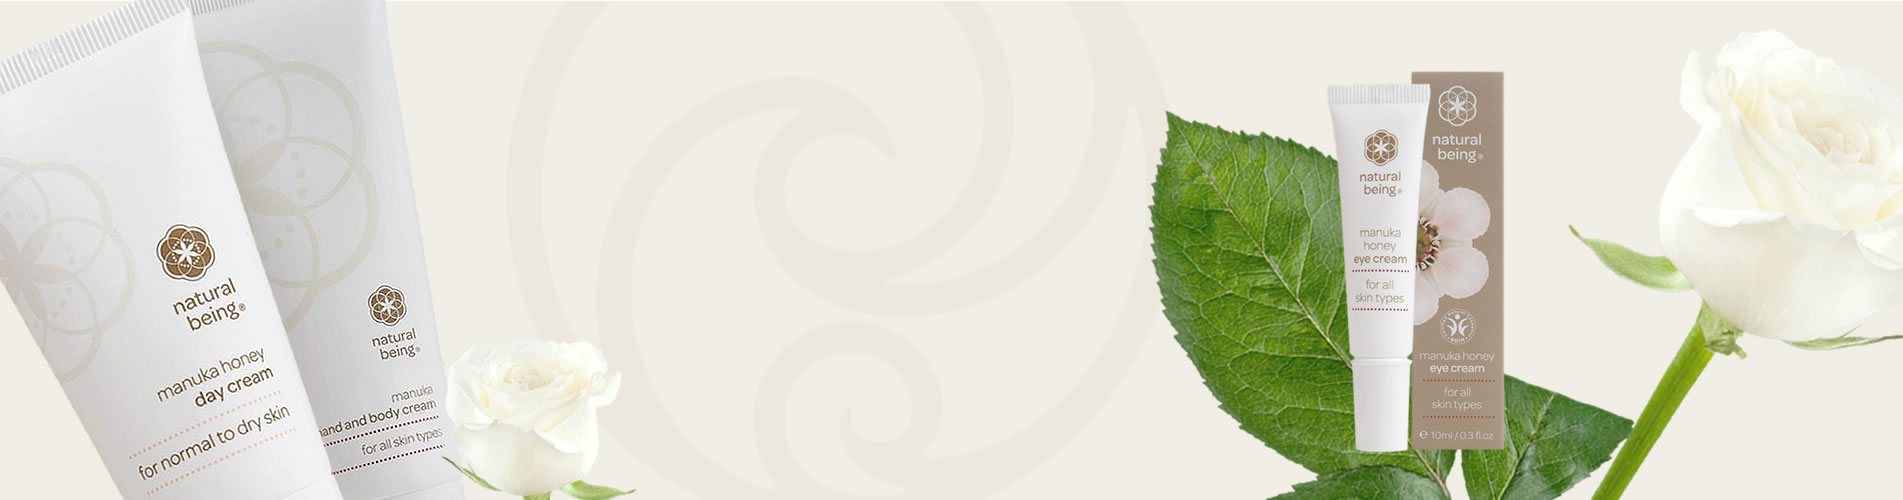 natural-being-banner